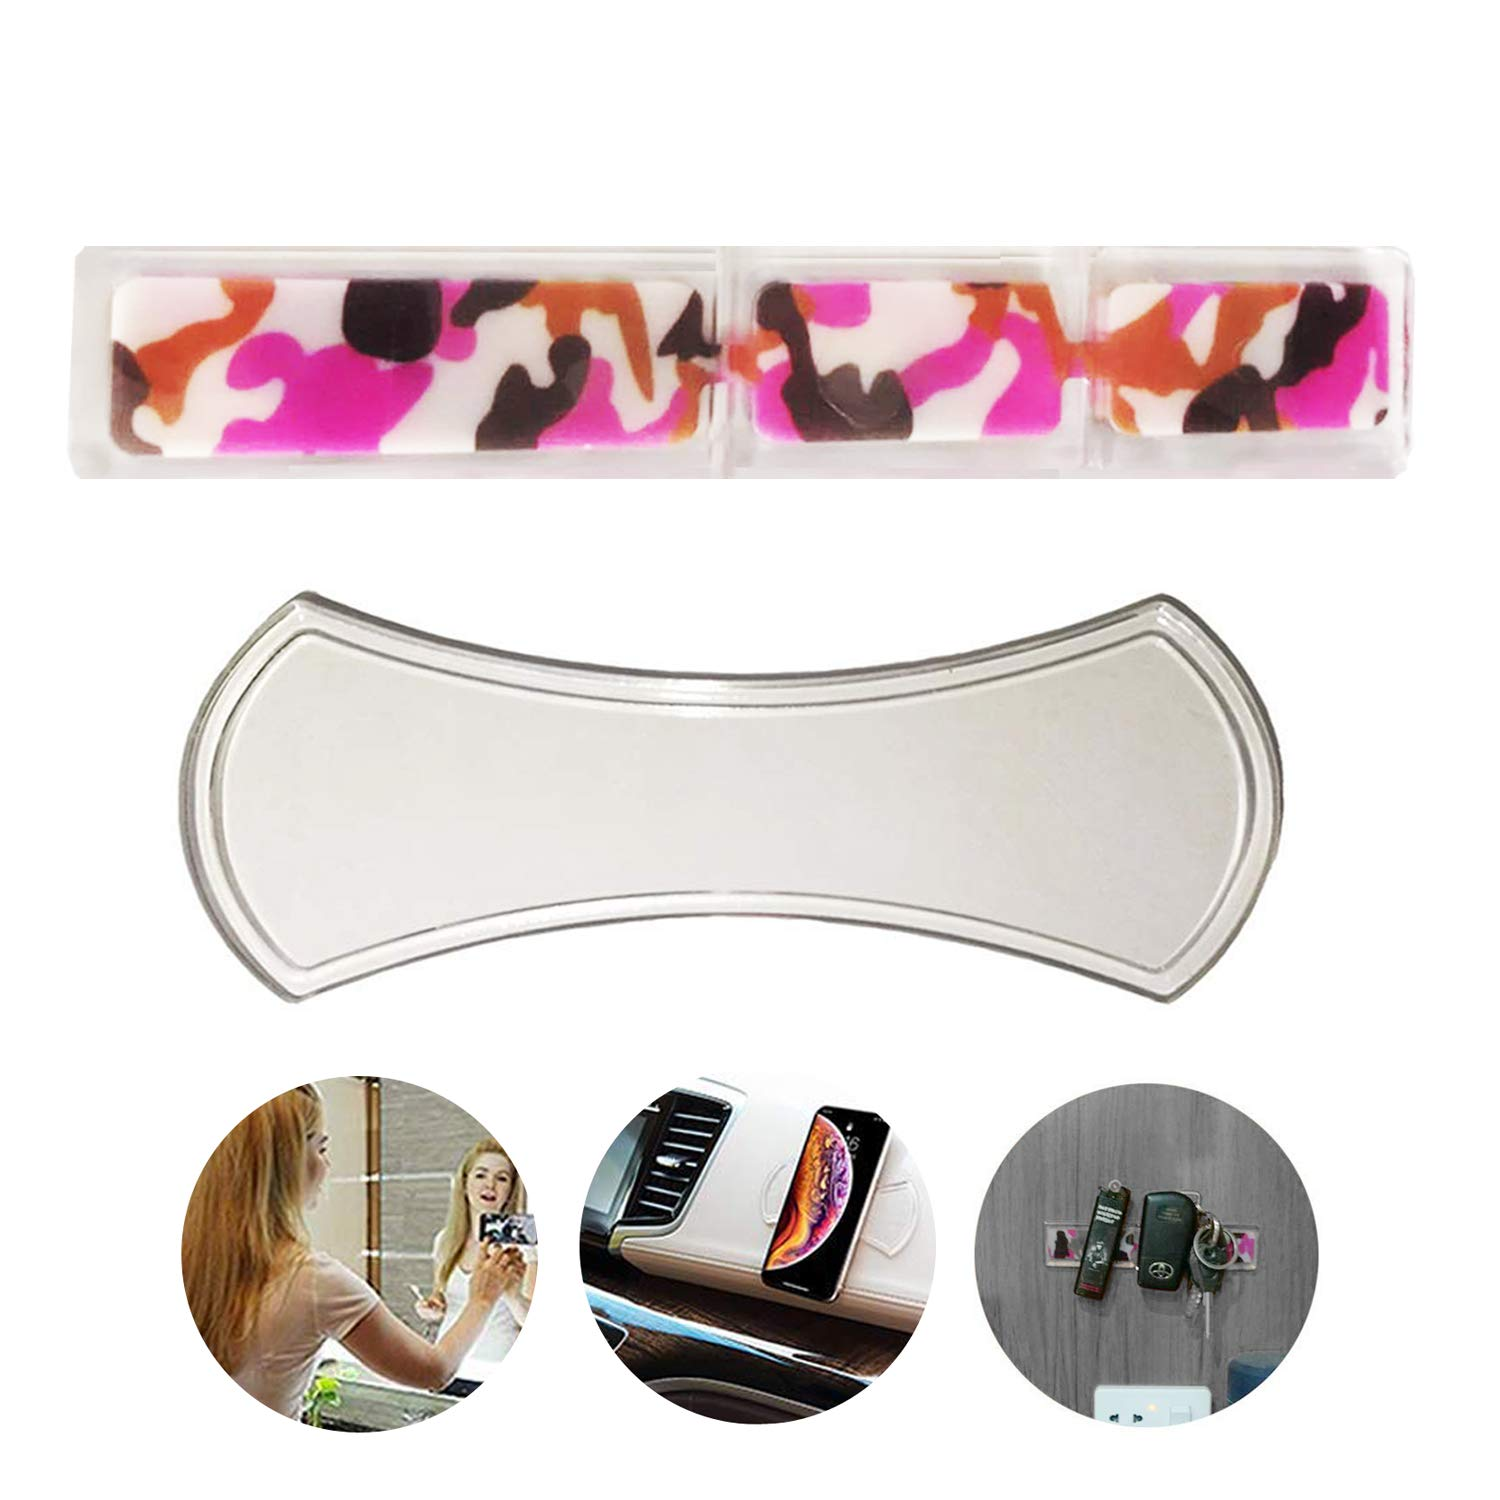 DREAM LIFE 4351483934 BASEEING Sticky Gel Pads Multi Function Magic Anti-Slip Nano Rubber Gel Pads Use at Car Office House or as Mobile Phone Holder Car Kits Bracket Pods Mat Stick to Anywhere Doughnut 2 Pcs Set